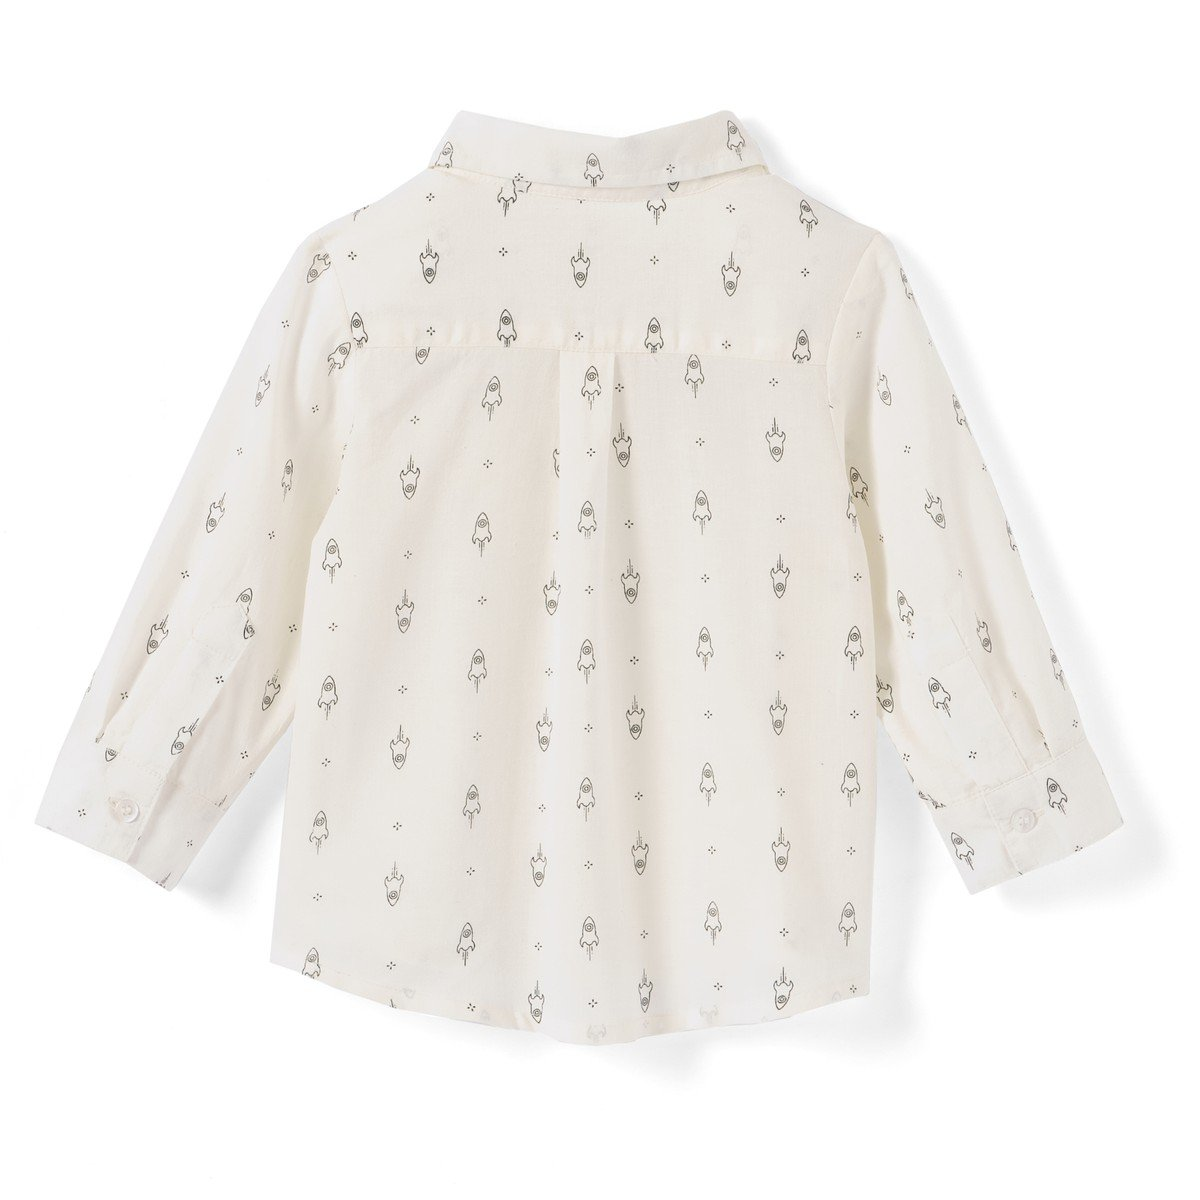 La Redoute Collections Big Boys Rocket Print Shirt 1 Mth-3 Years/&Nbsp;